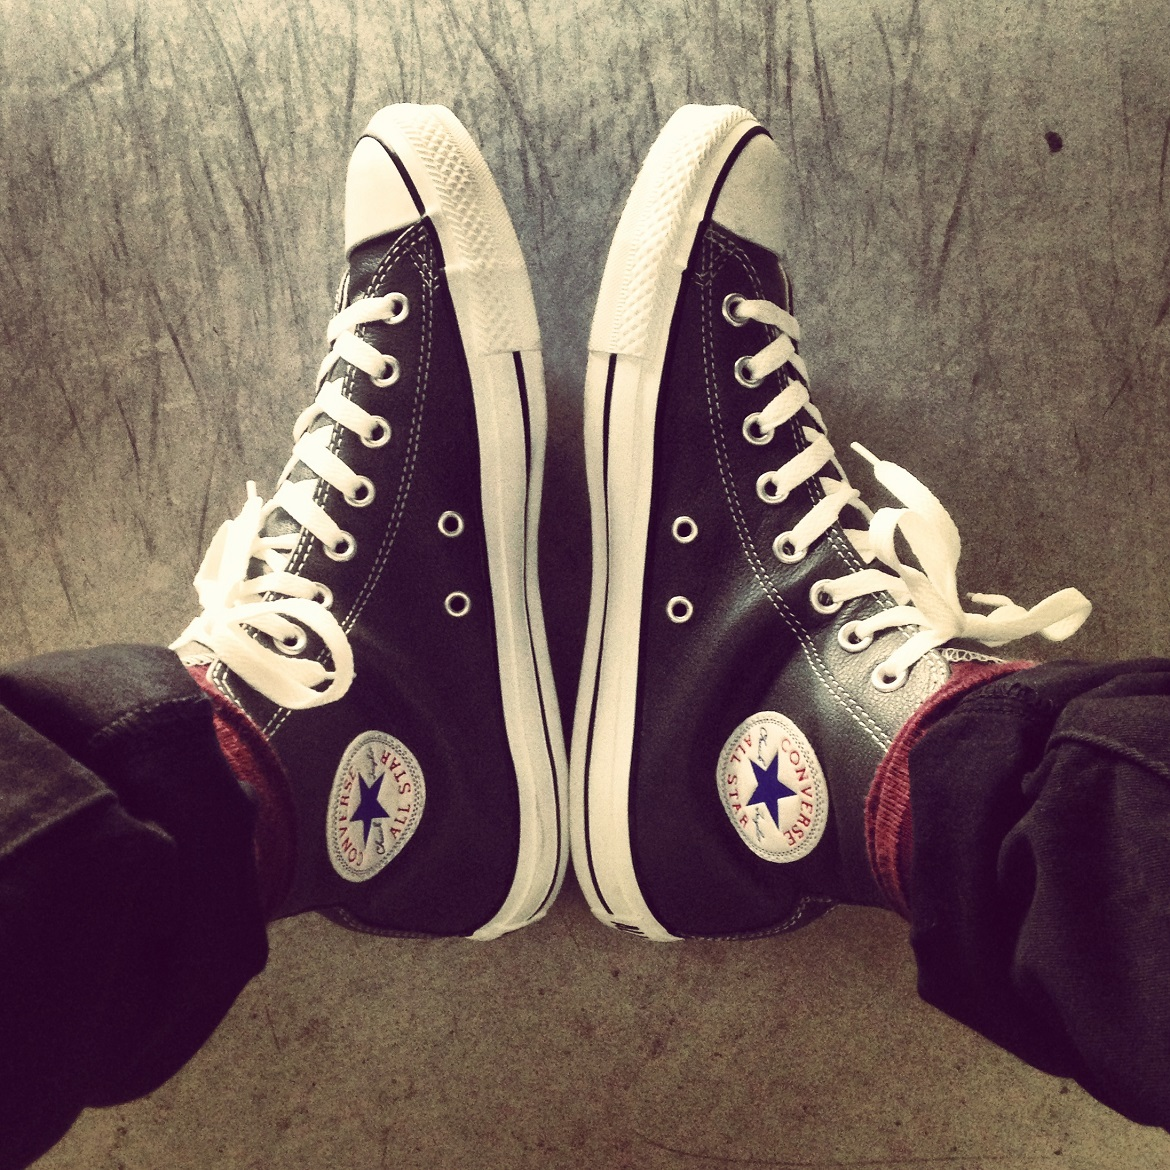 Weather changes fast but a pair of Converse Chuck Taylor All Star is always in fashion.